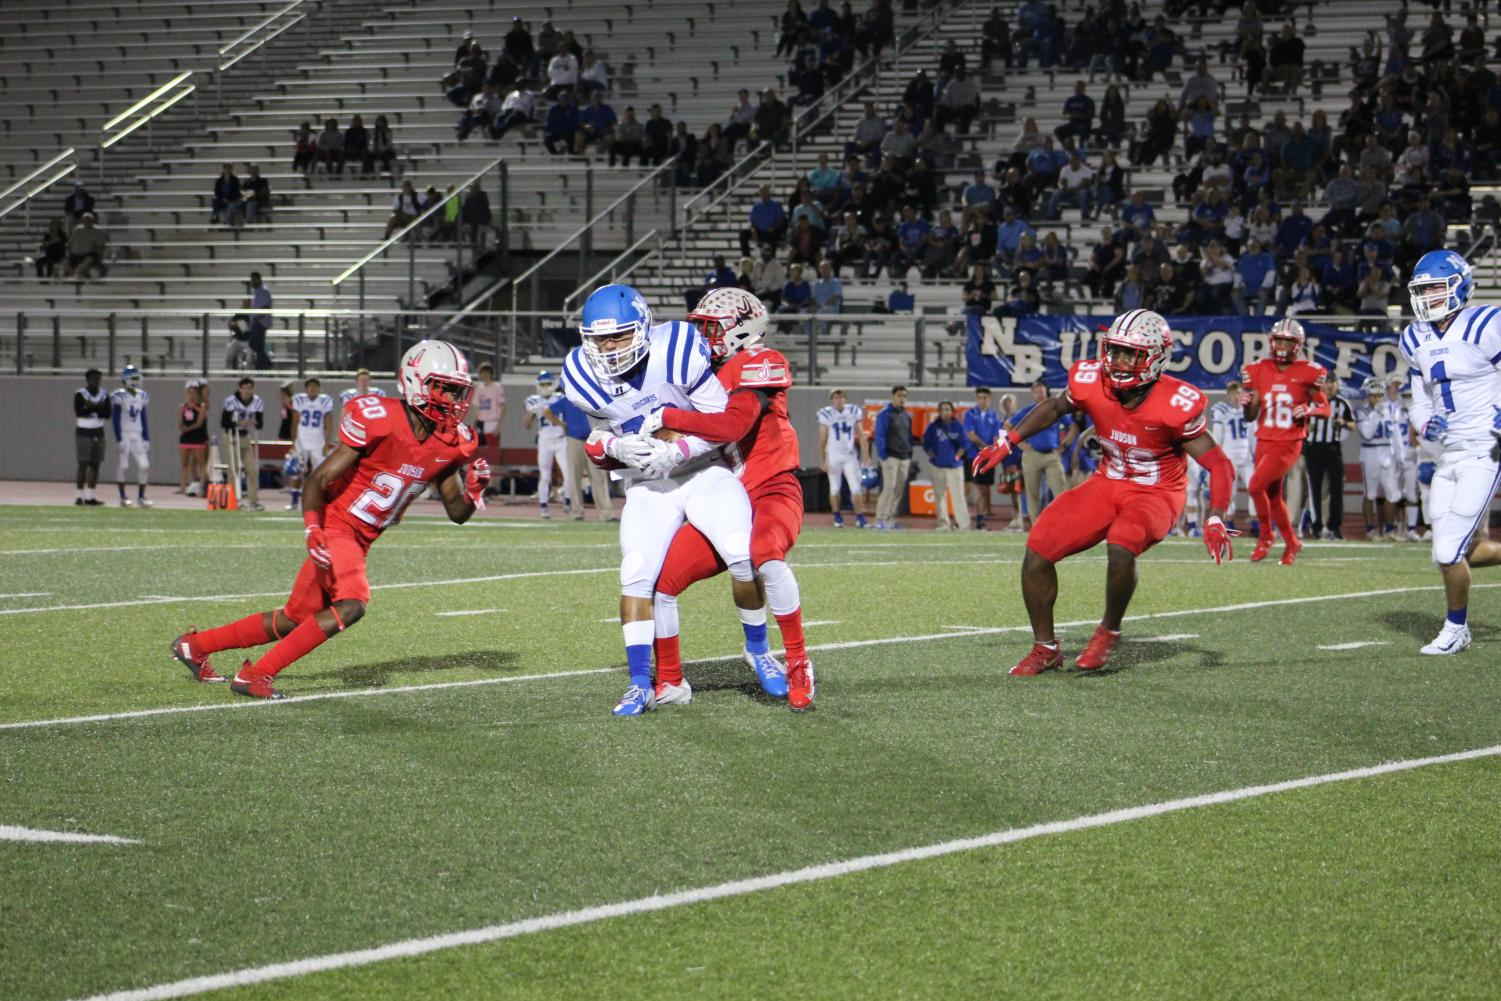 Judson defenders tries to bring down a New Braunfels receiver. Rockets capped the night off with a 37-11 win.